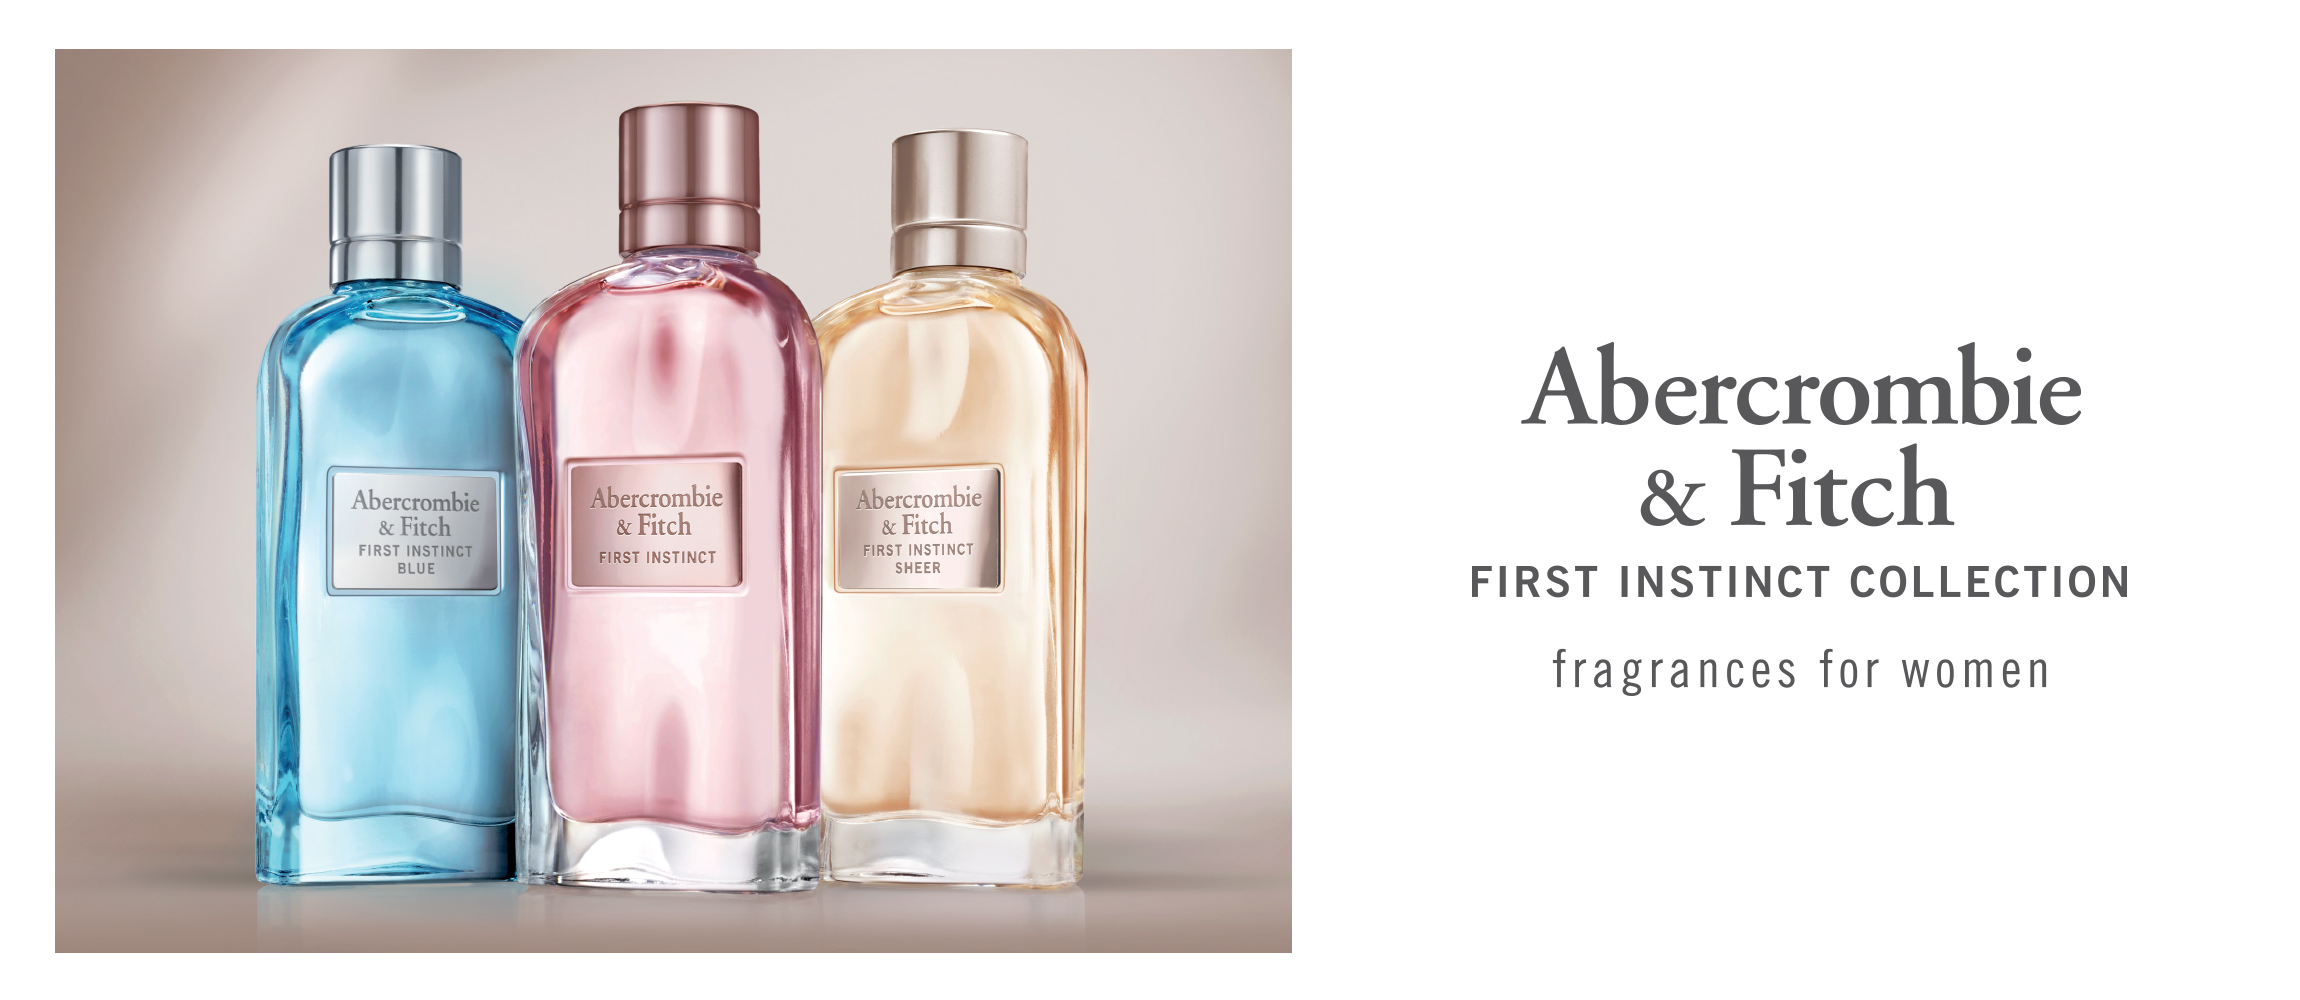 Abercrombie & Fitch, parfume